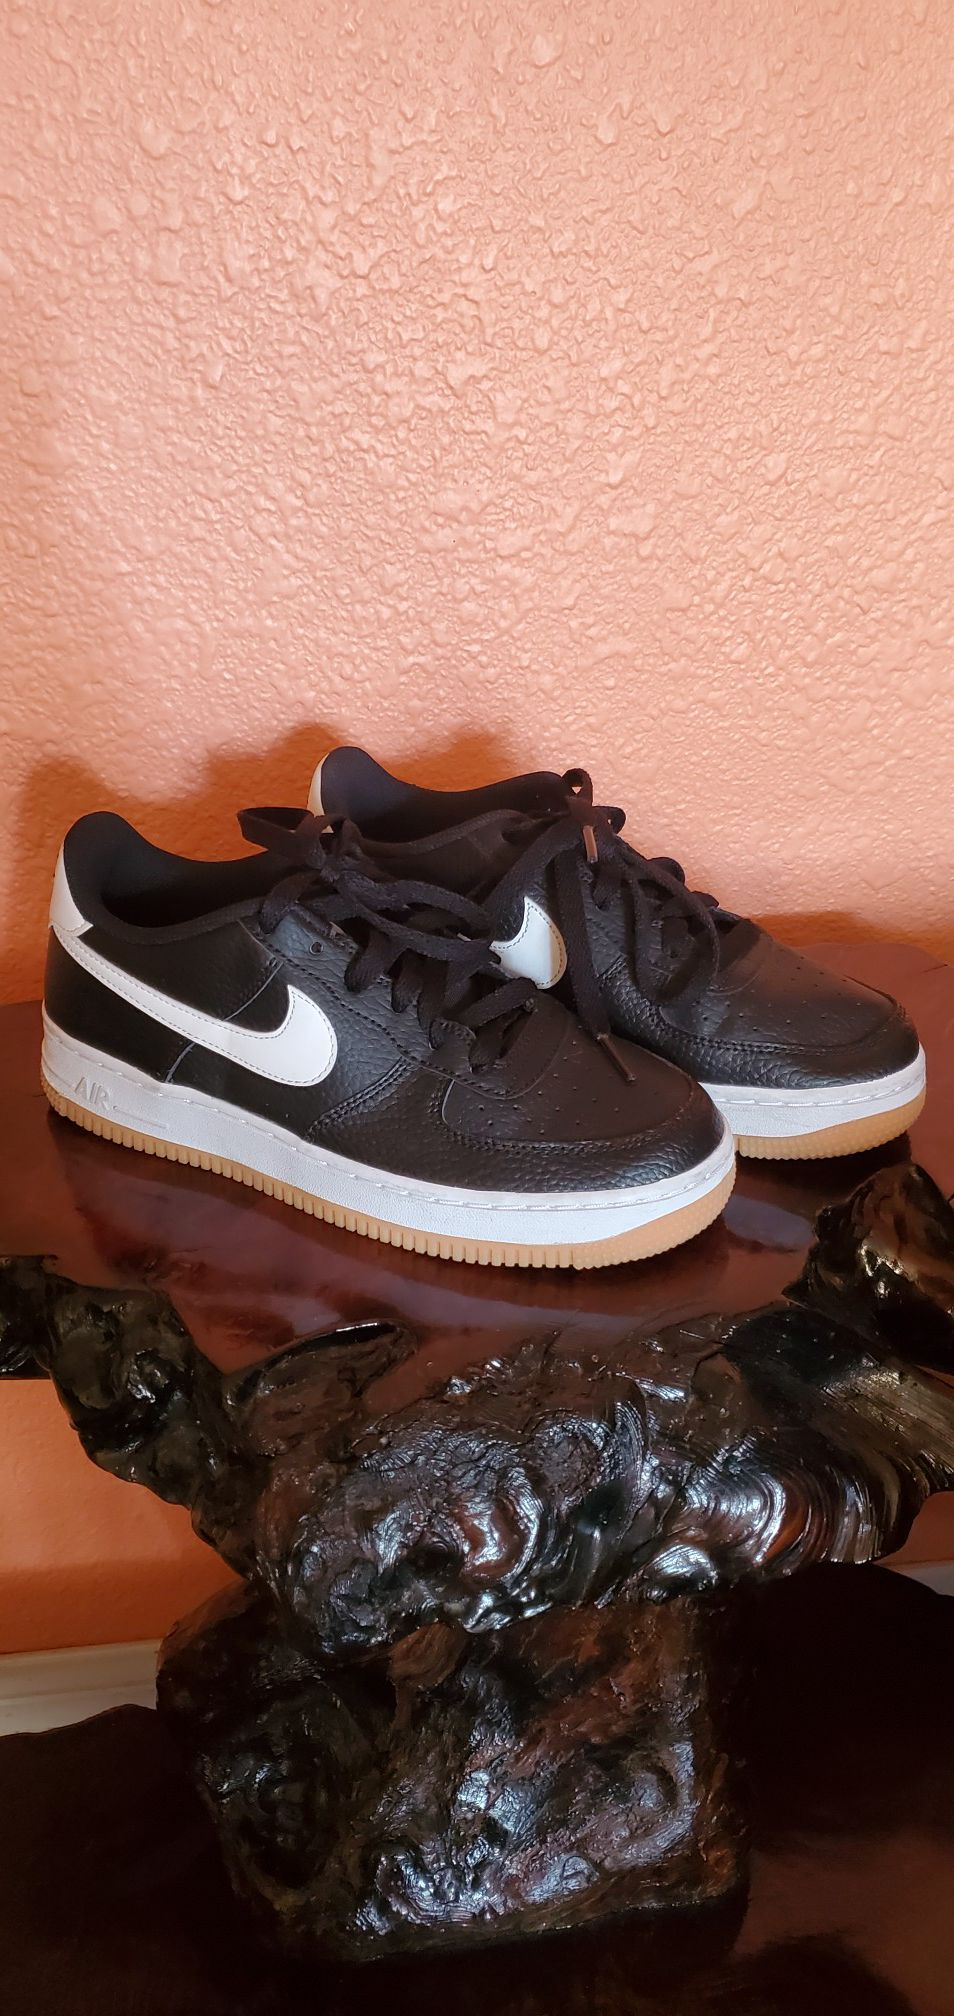 Nike Air Forse 1 size mens 5,5